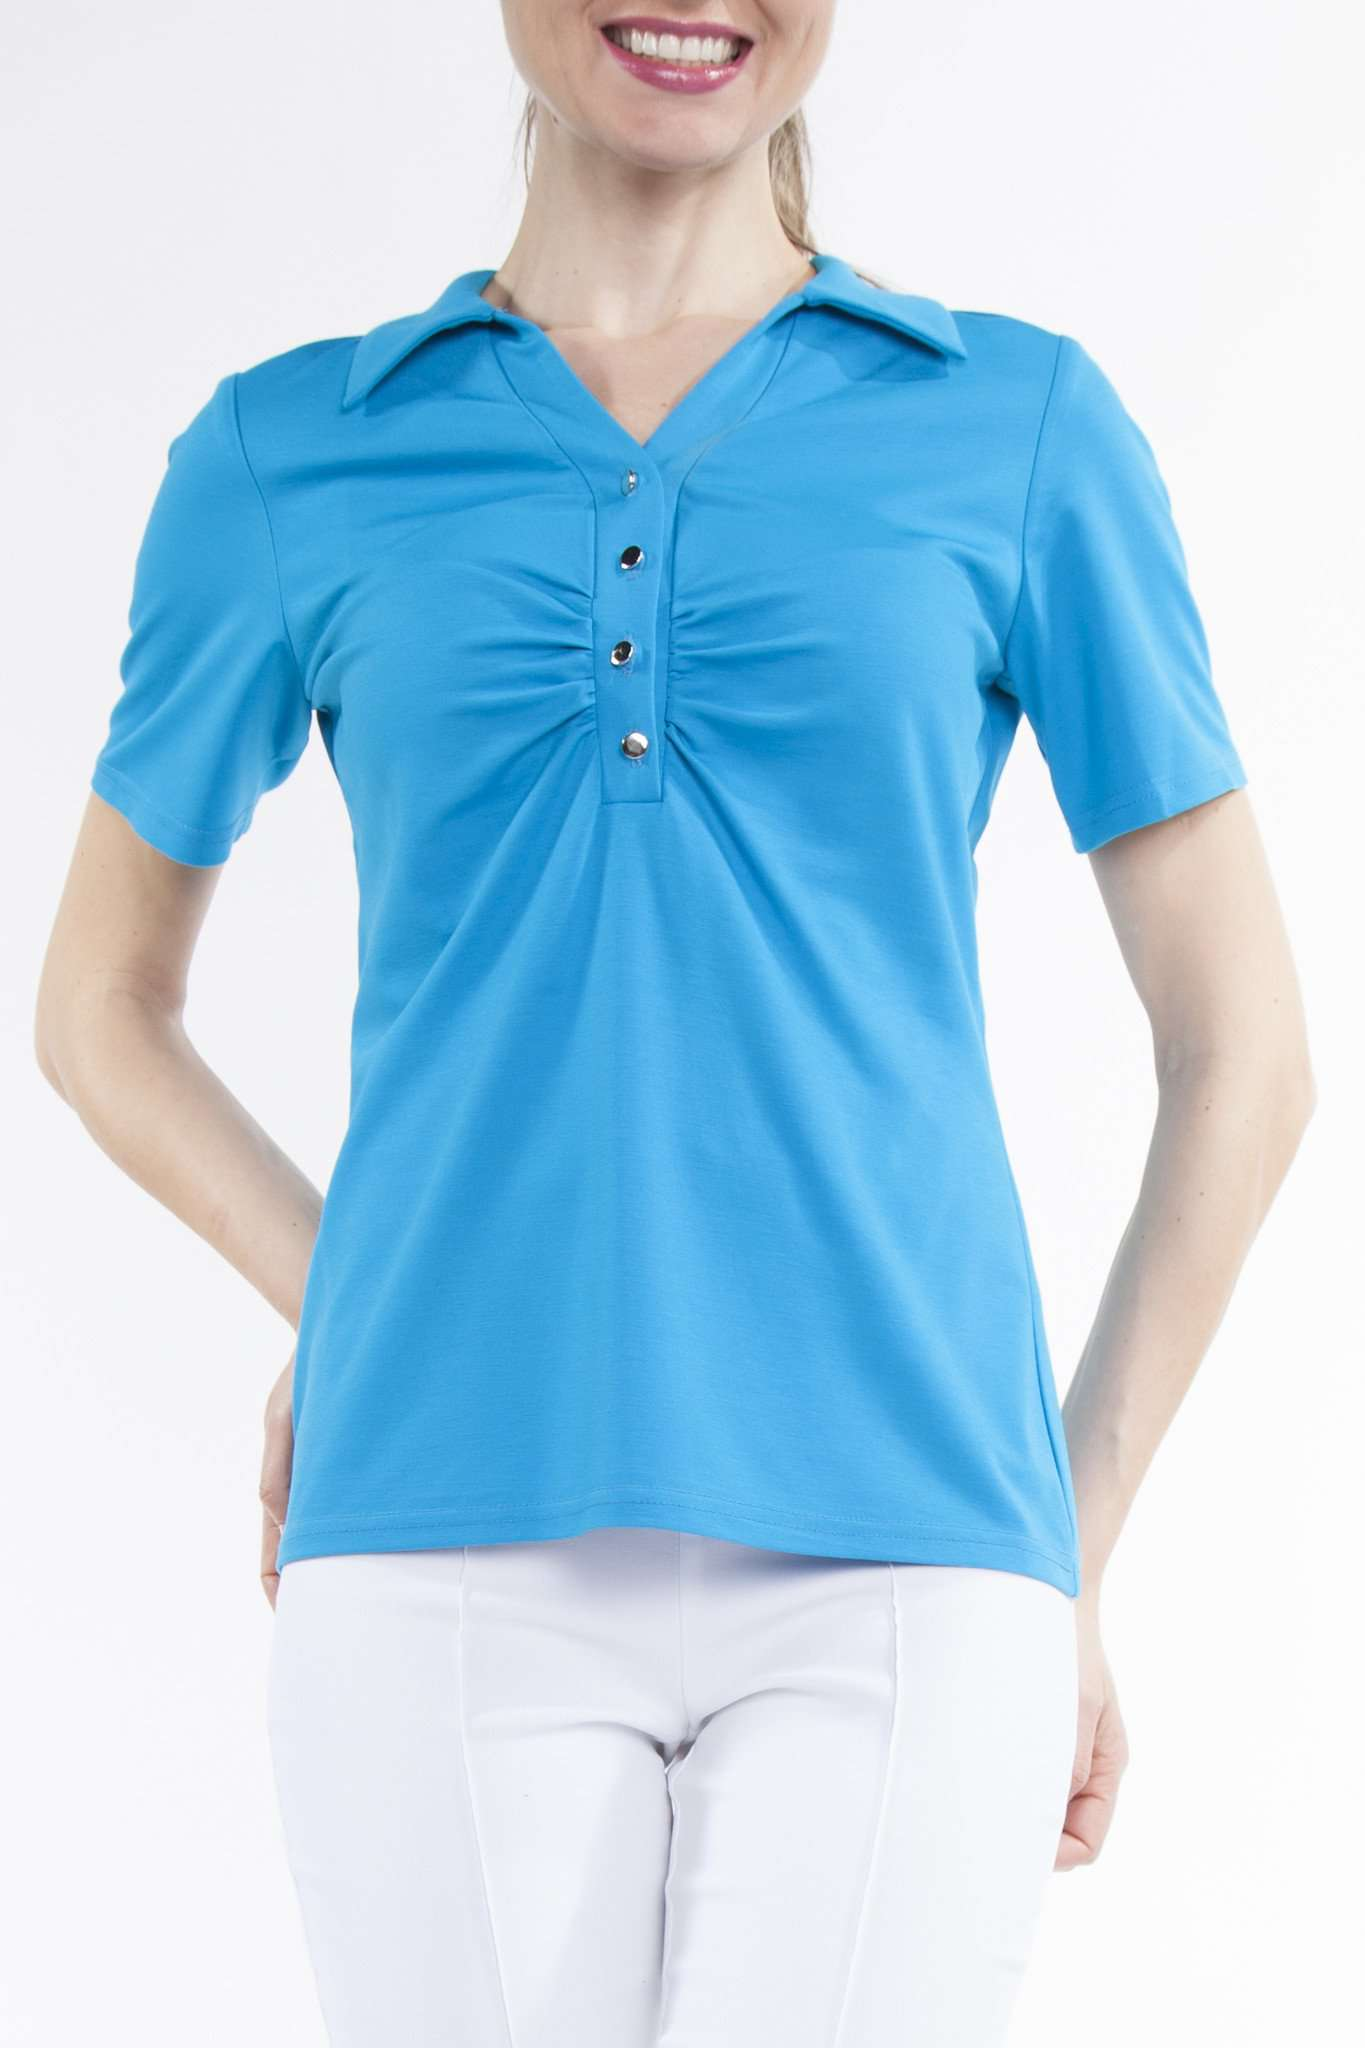 Women's Polo Top Turquoise - Made in Canada - Yvonne Marie - Yvonne Marie